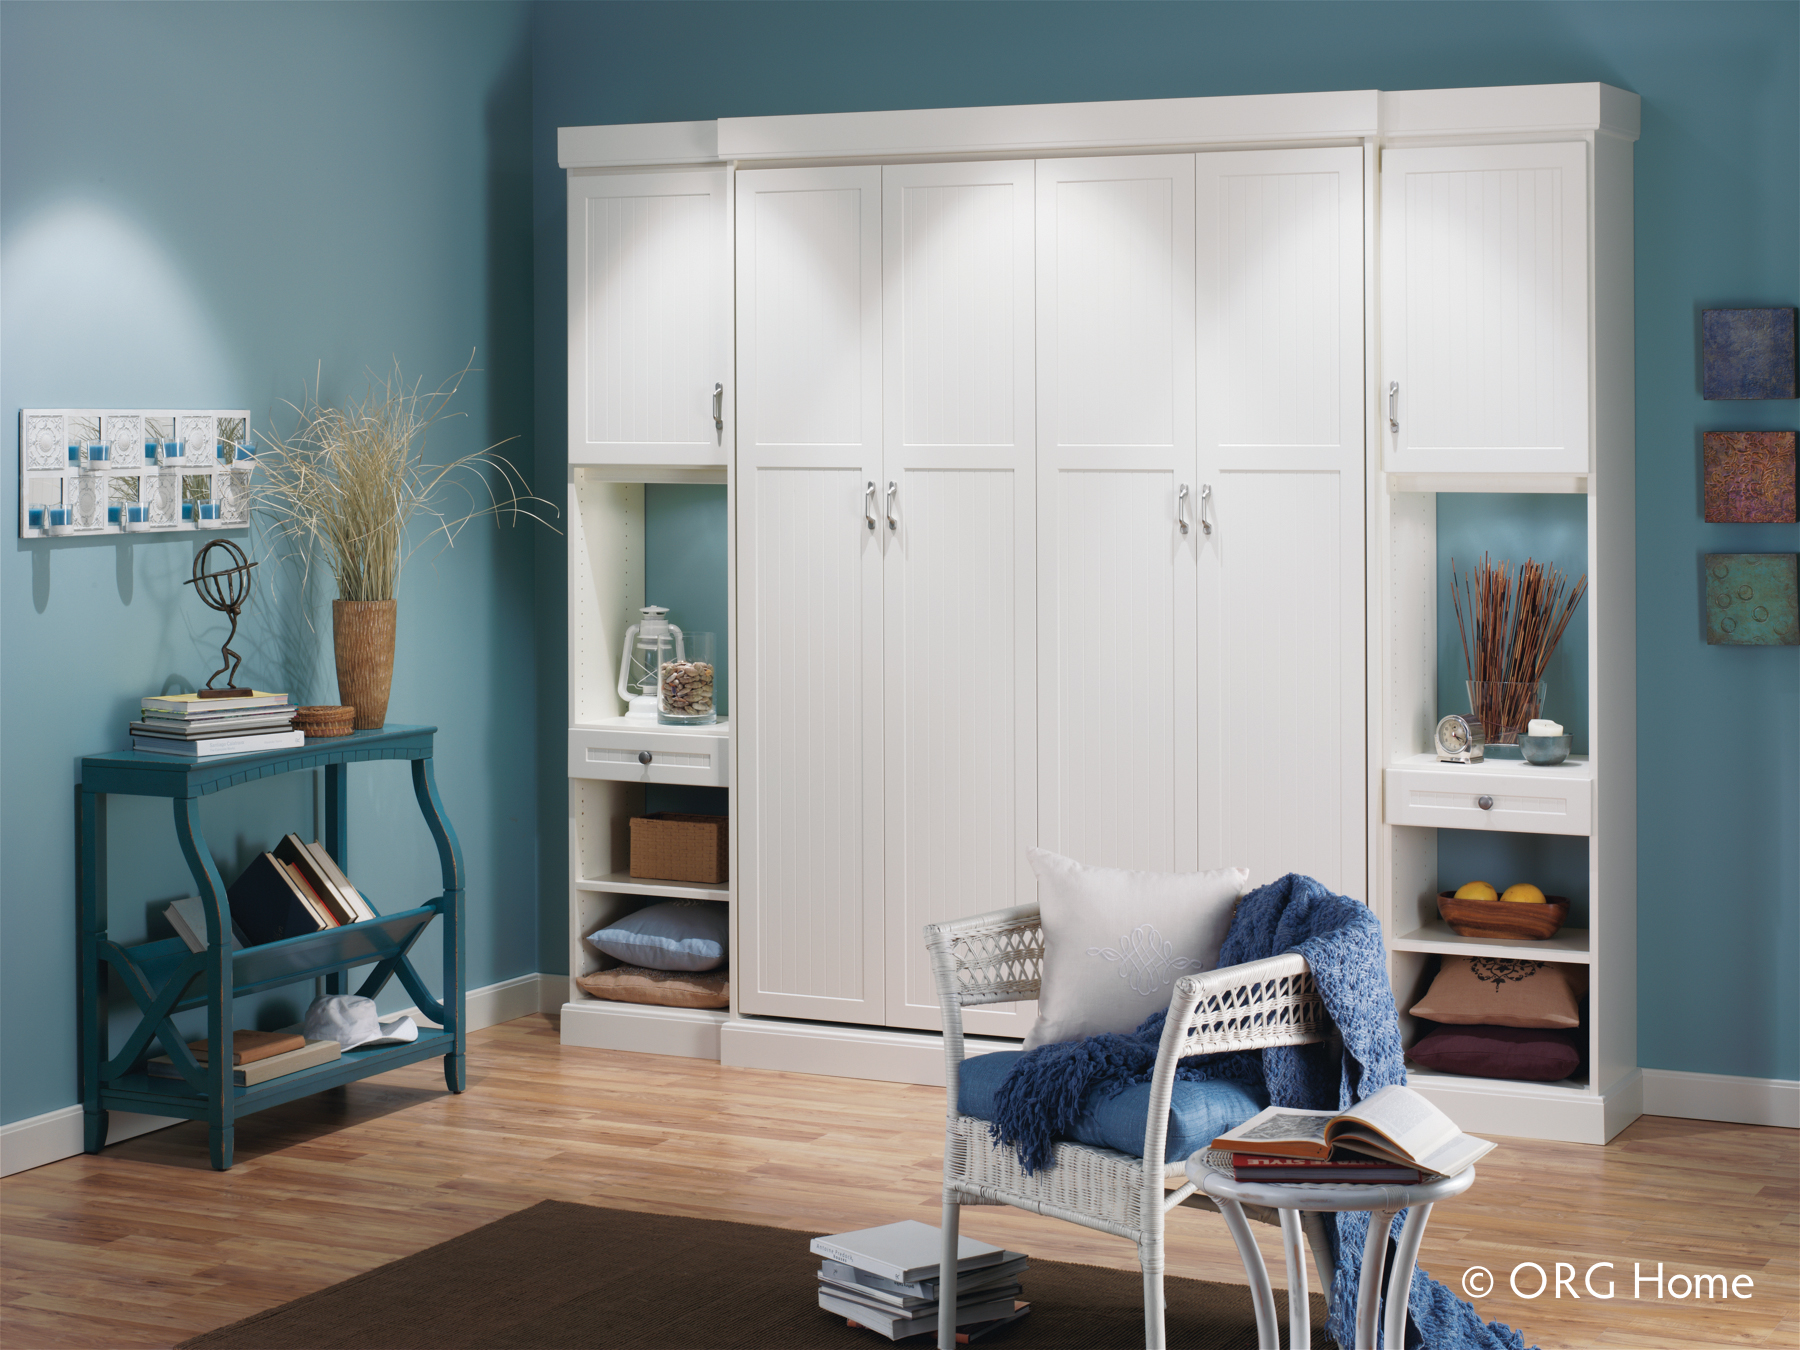 10 Reasons To Own A Murphy Bed